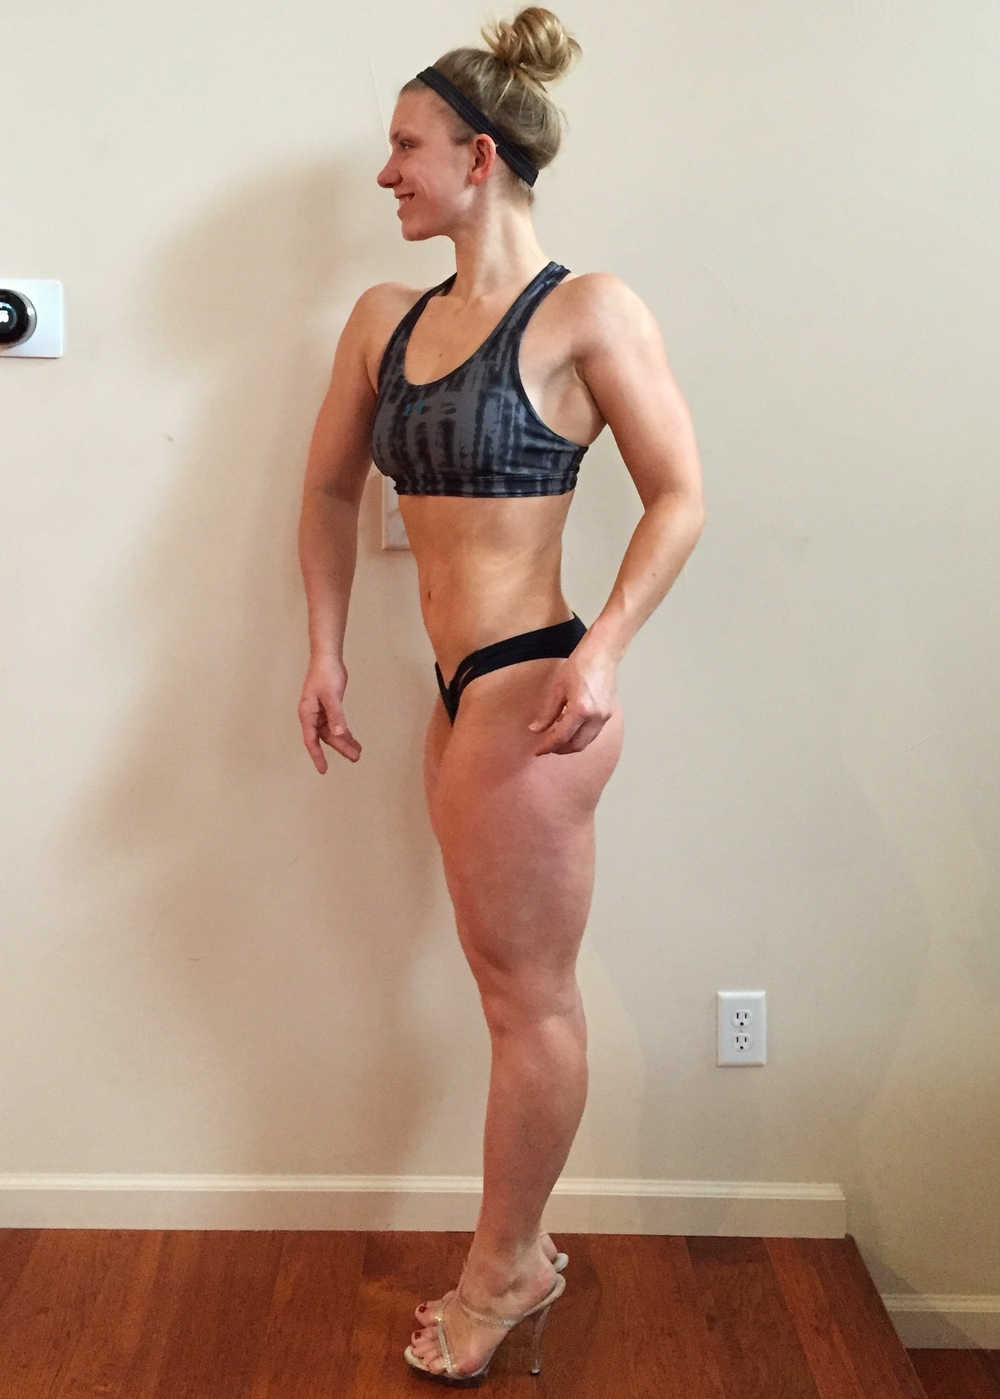 2 Weeks Out | My Engineered Prep